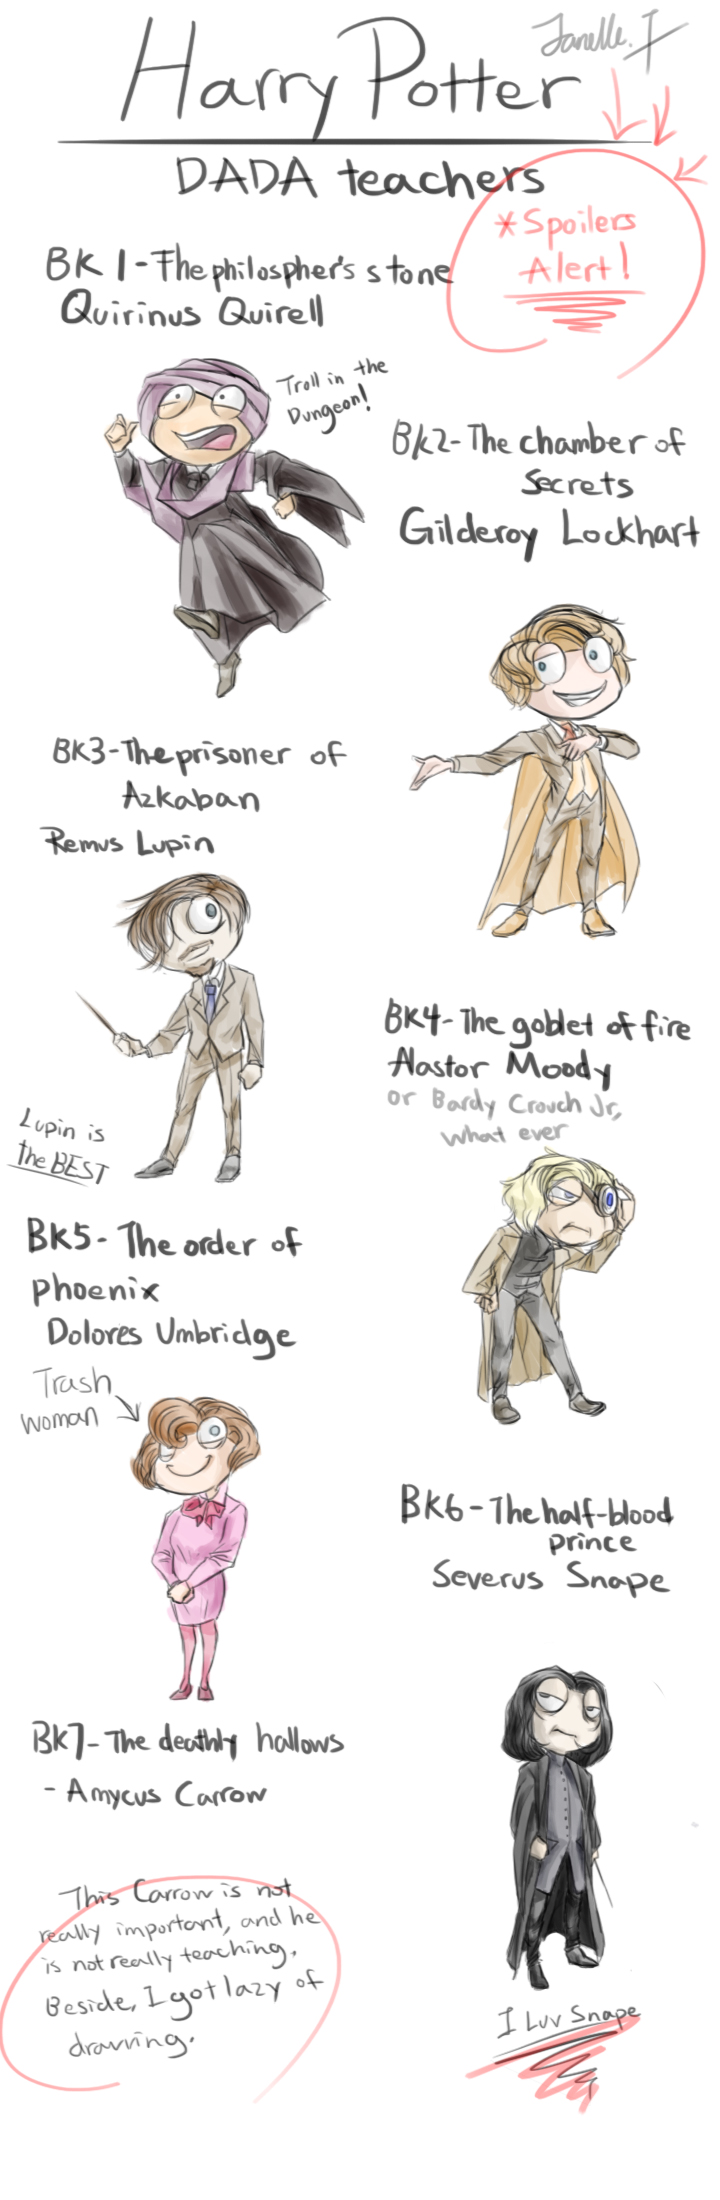 Harry Potter Poptropica Version-DADA teachers